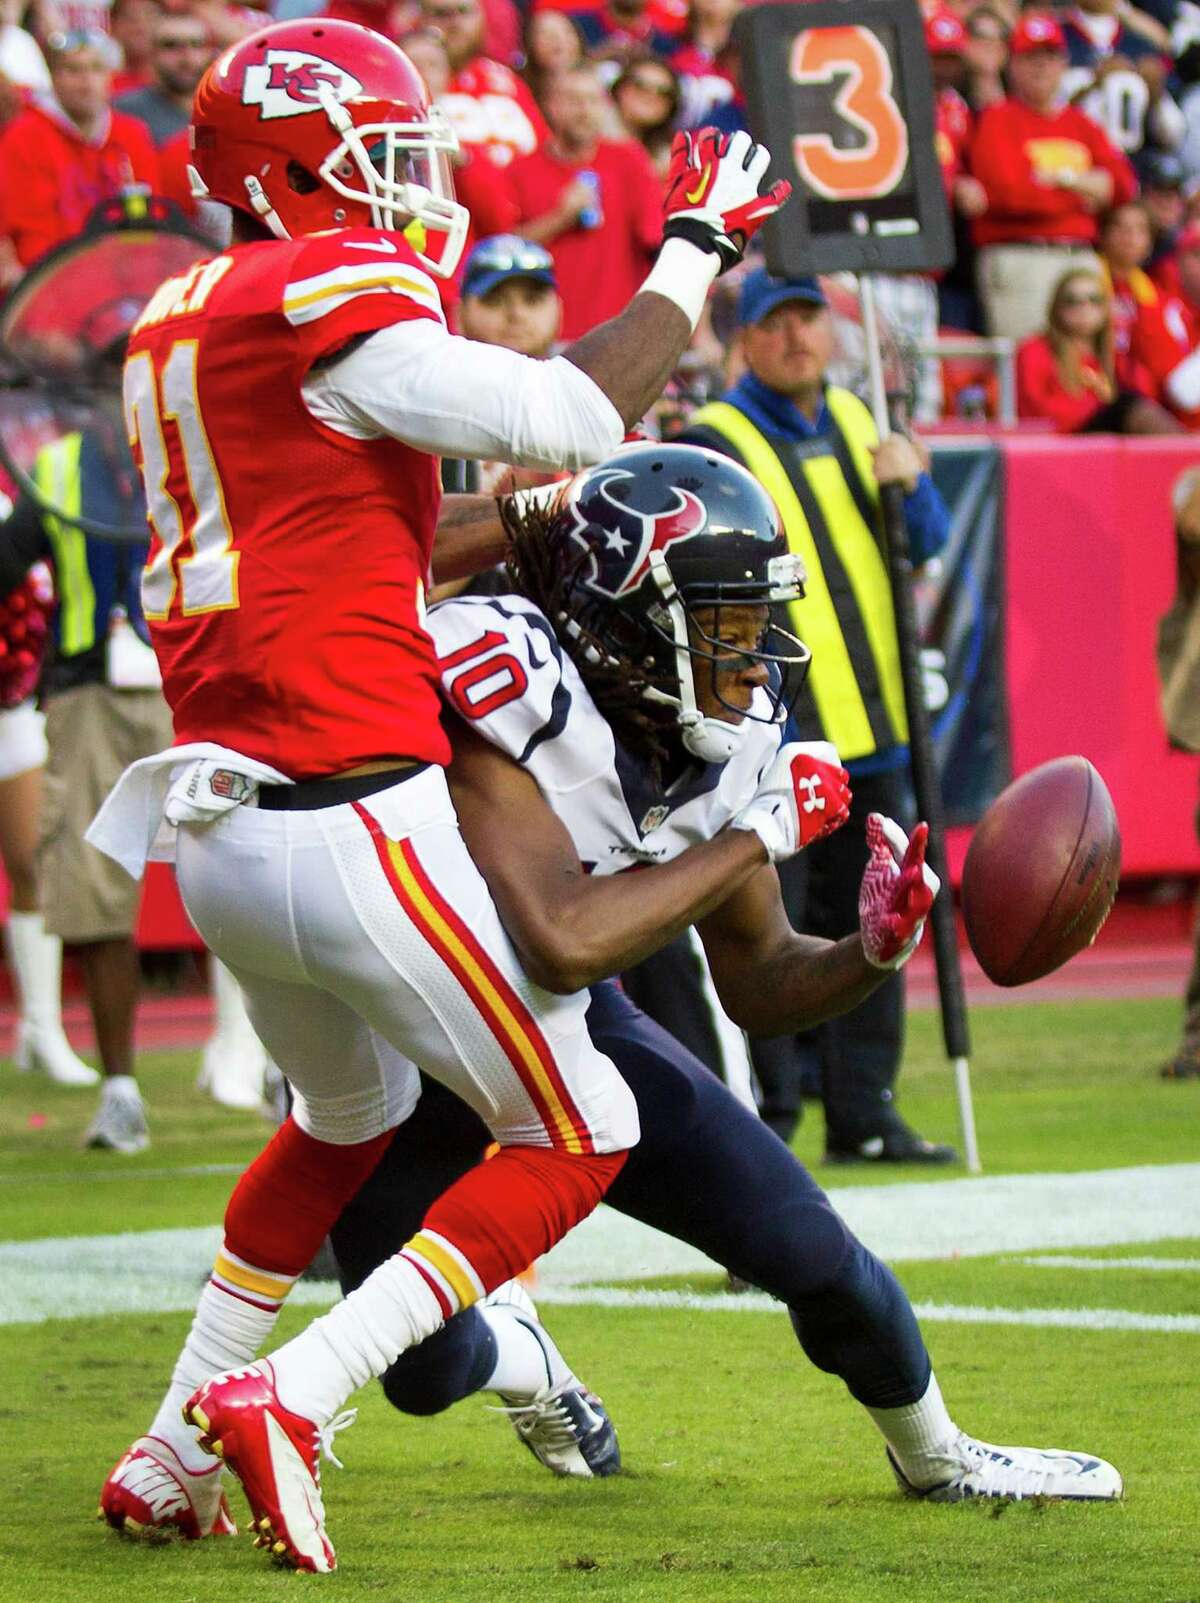 Chiefs cornerback Marcus Cooper (31) breaks up a pass in the end zone intended for Texans receiver DeAndre Hopkins, who had three receptions for 76 yards.